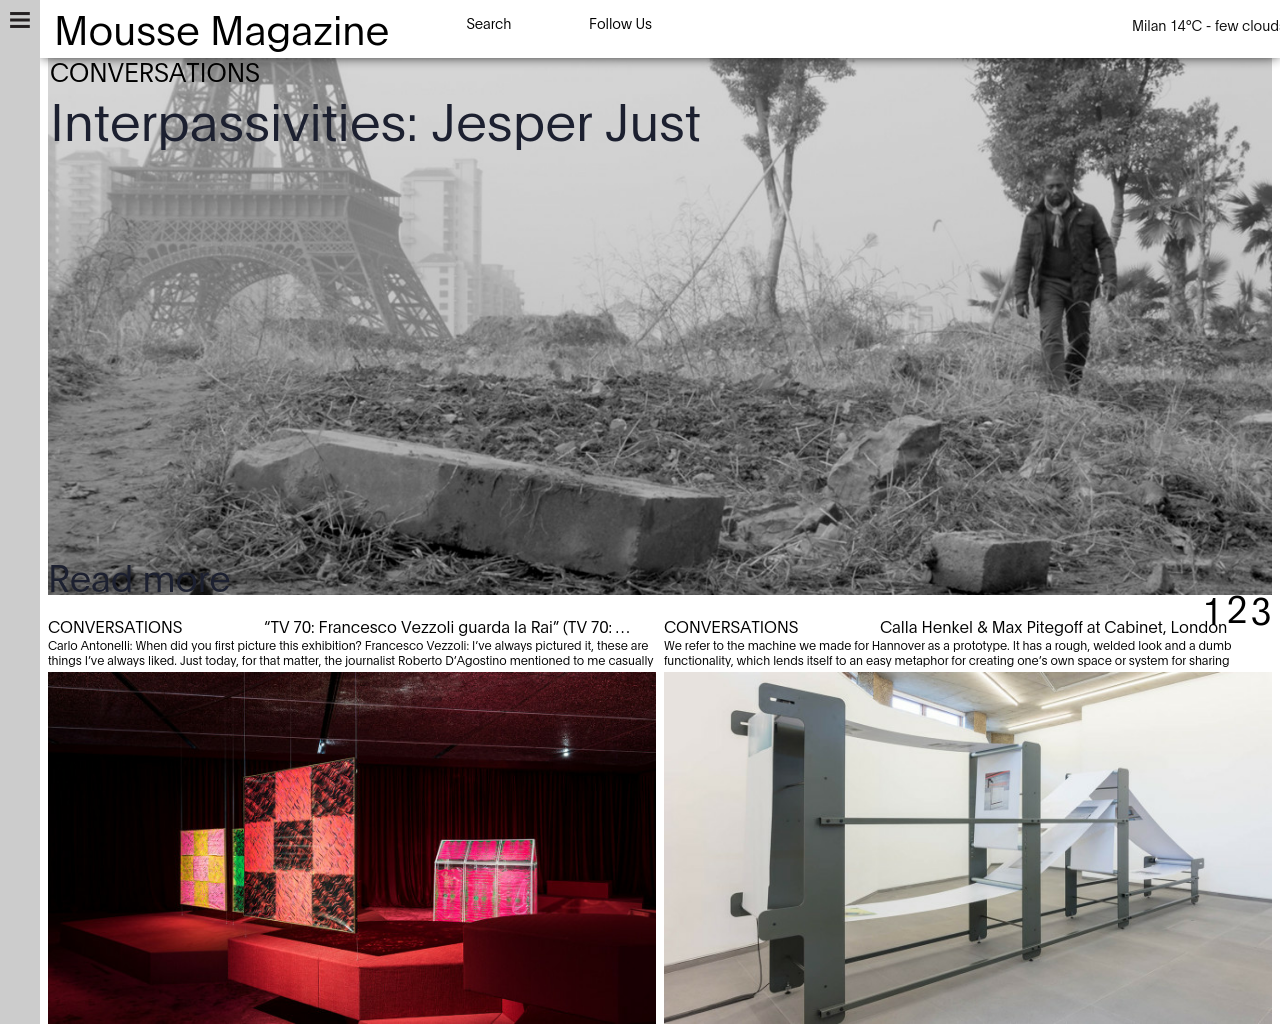 Mousse-Contemporary-Art-Magazine-Advertising-Reviews-Pricing